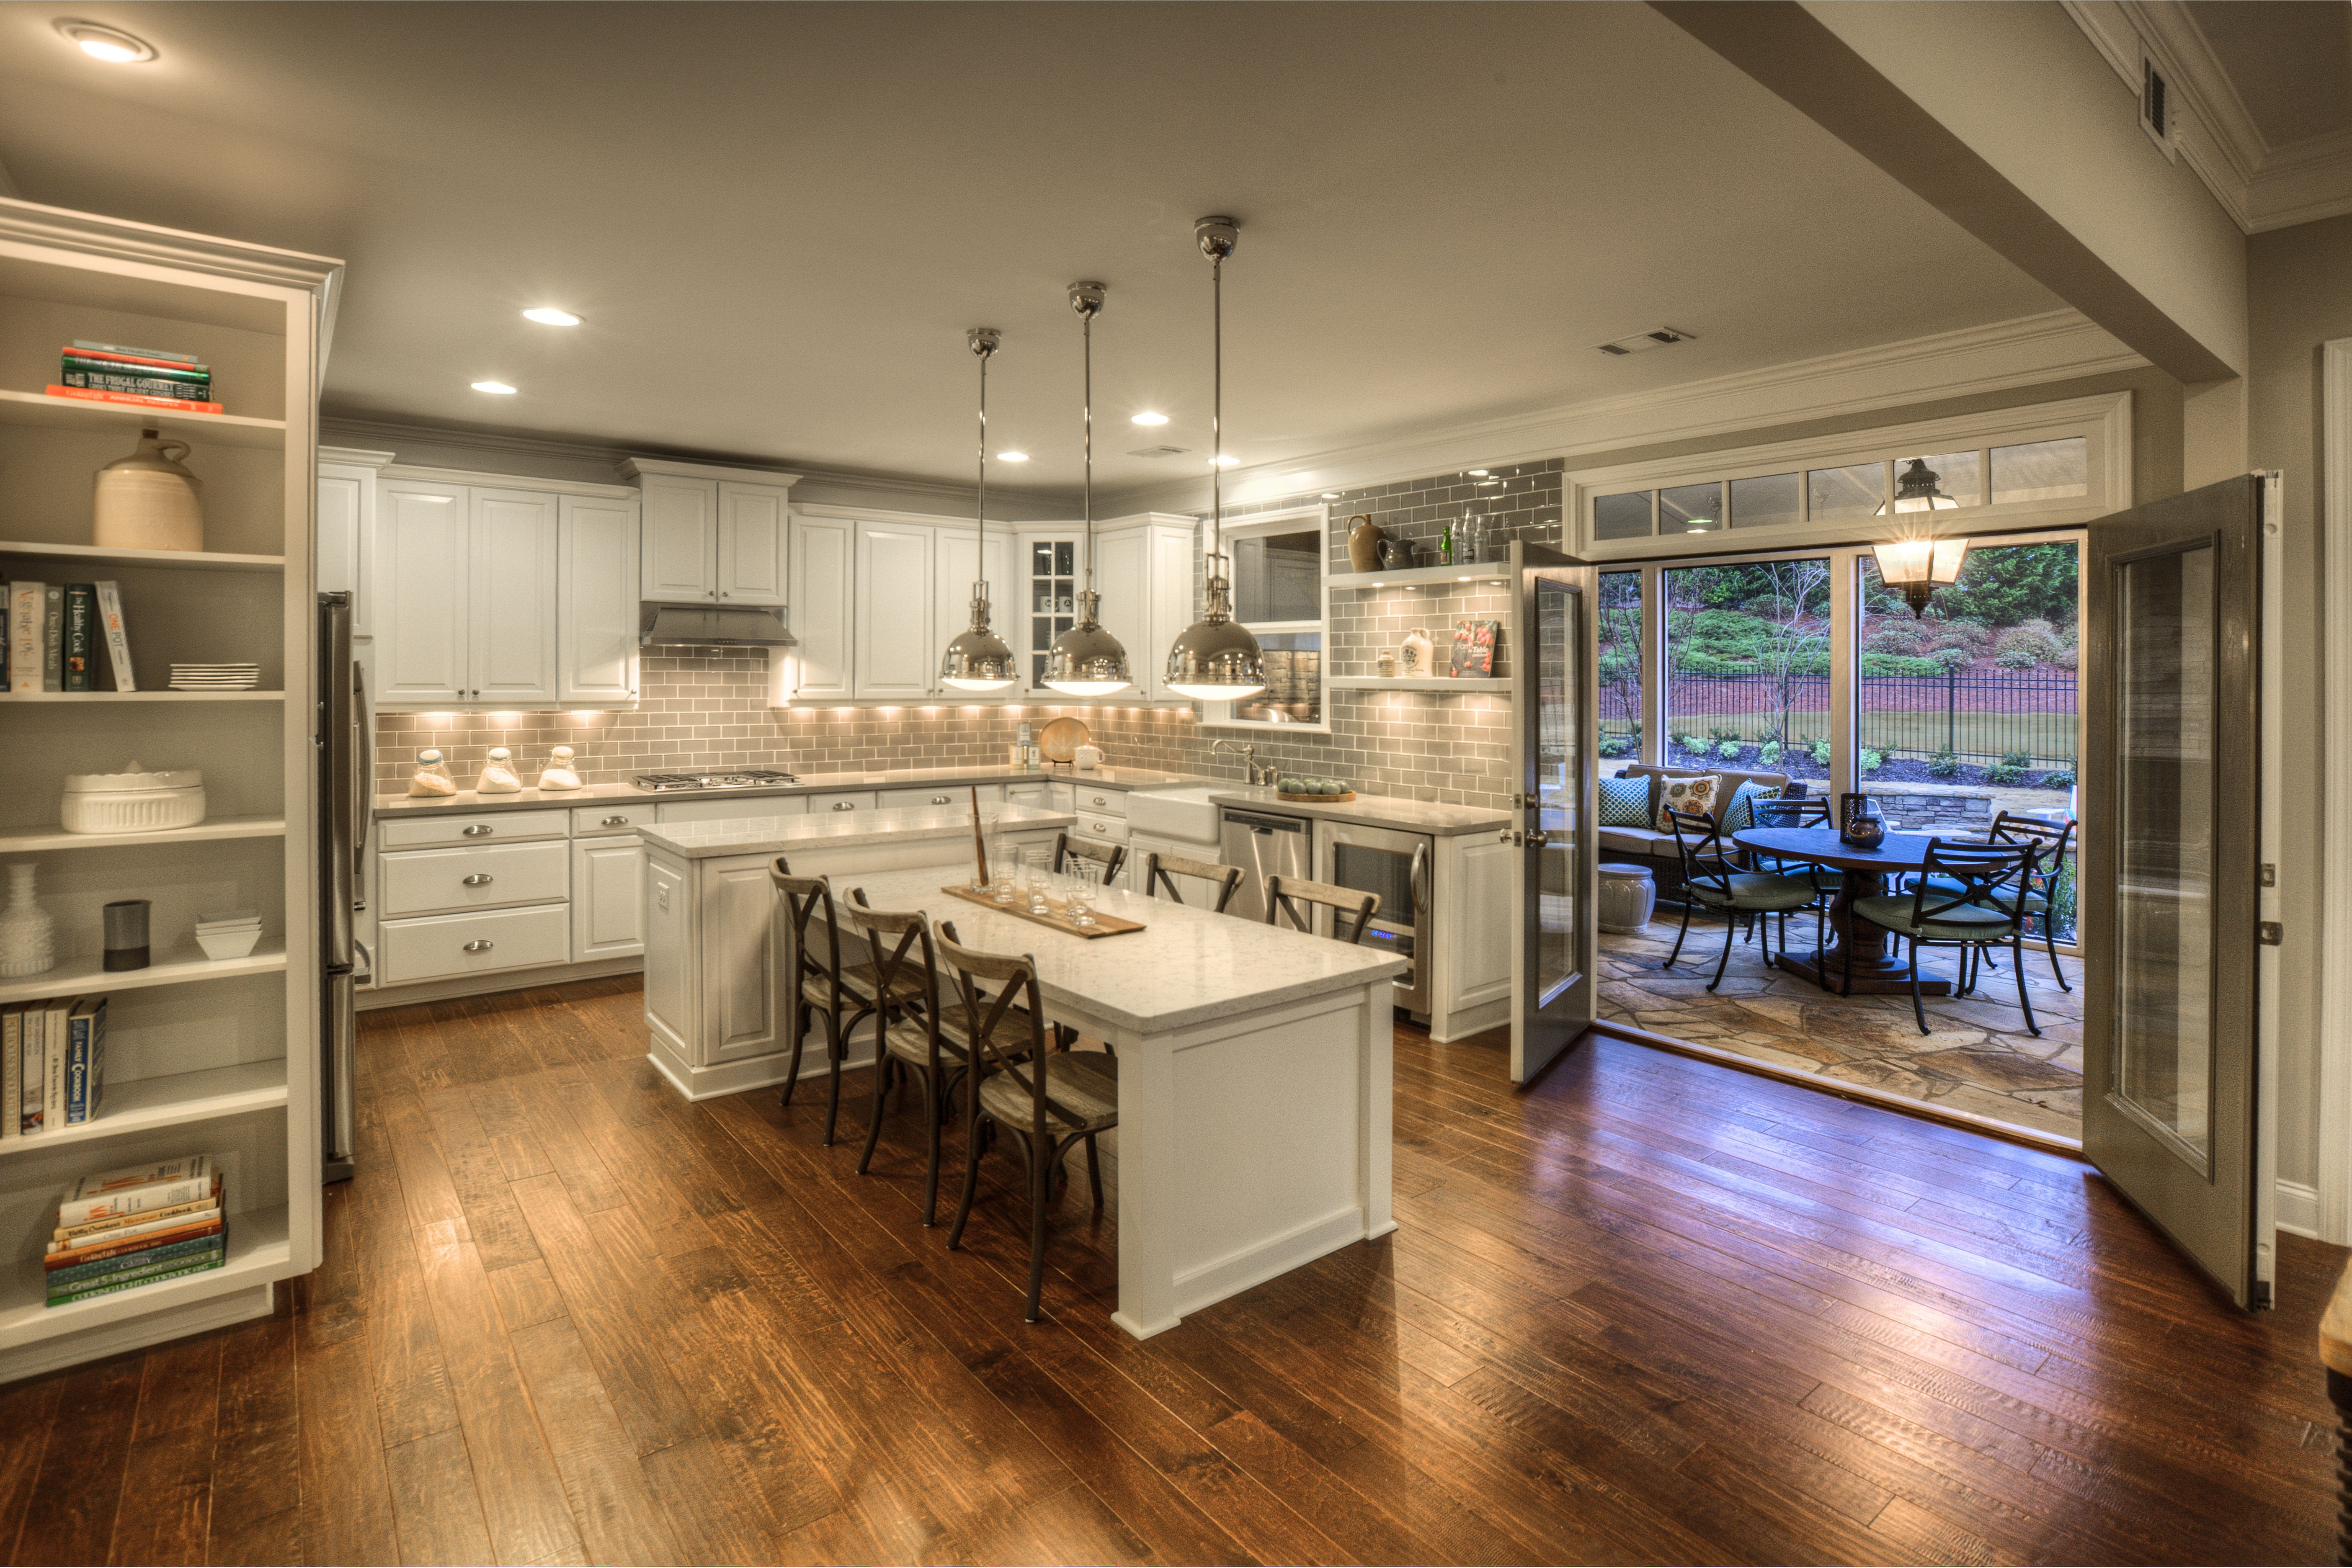 Inspiring Spaces Blog Kitchen Island And Table Combo Kitchen Island Table Kitchen Island Design